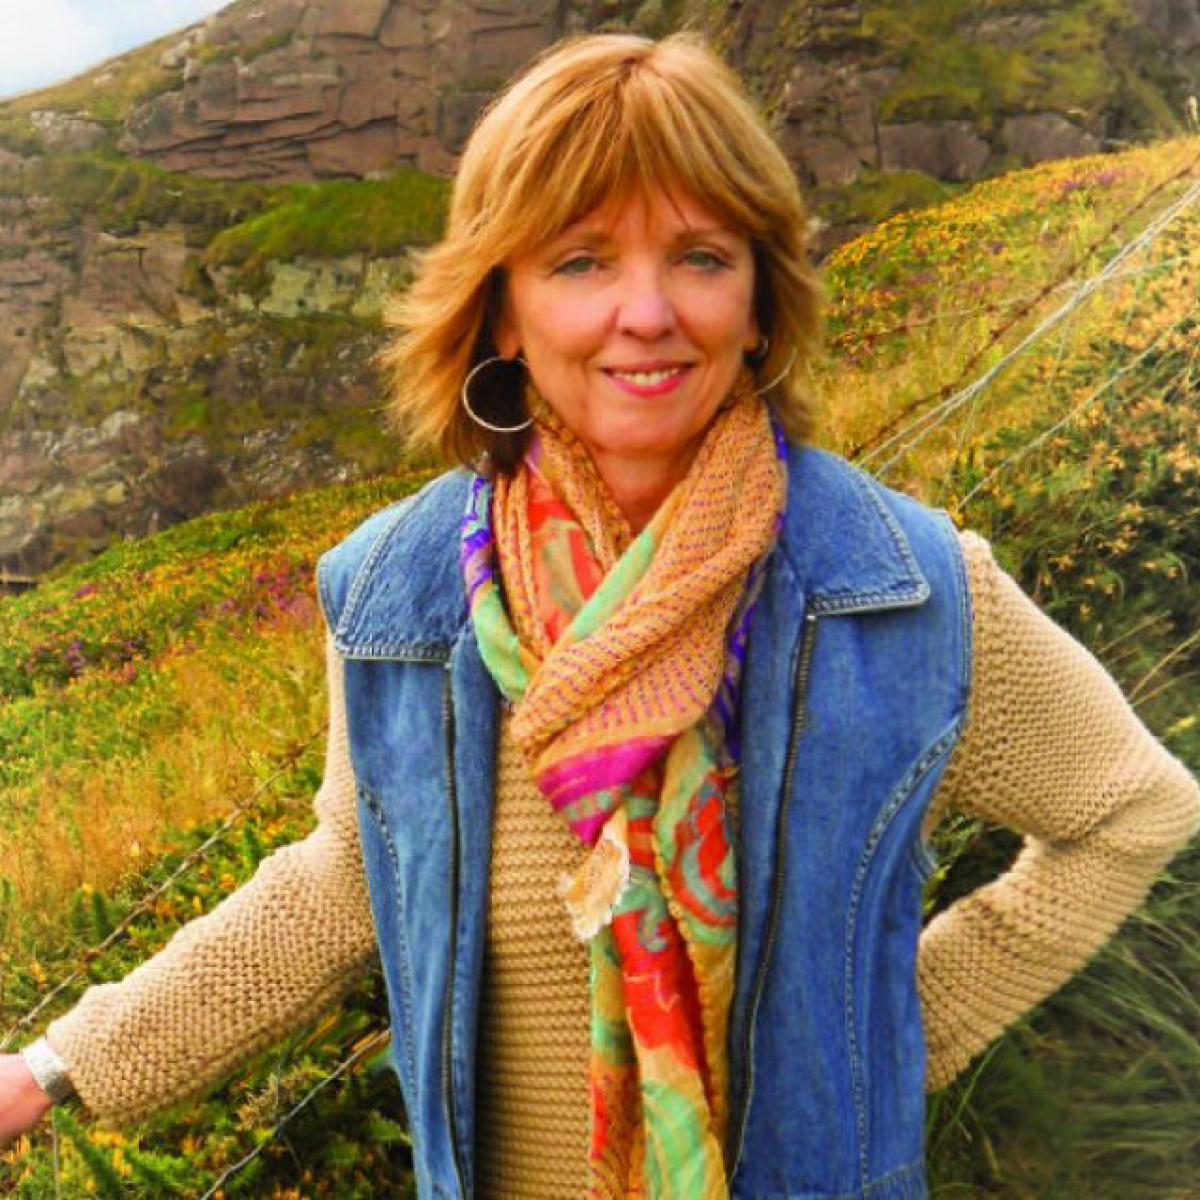 Hideaway book review: Nora Roberts beautifully portrays family ties in a new romantic suspense